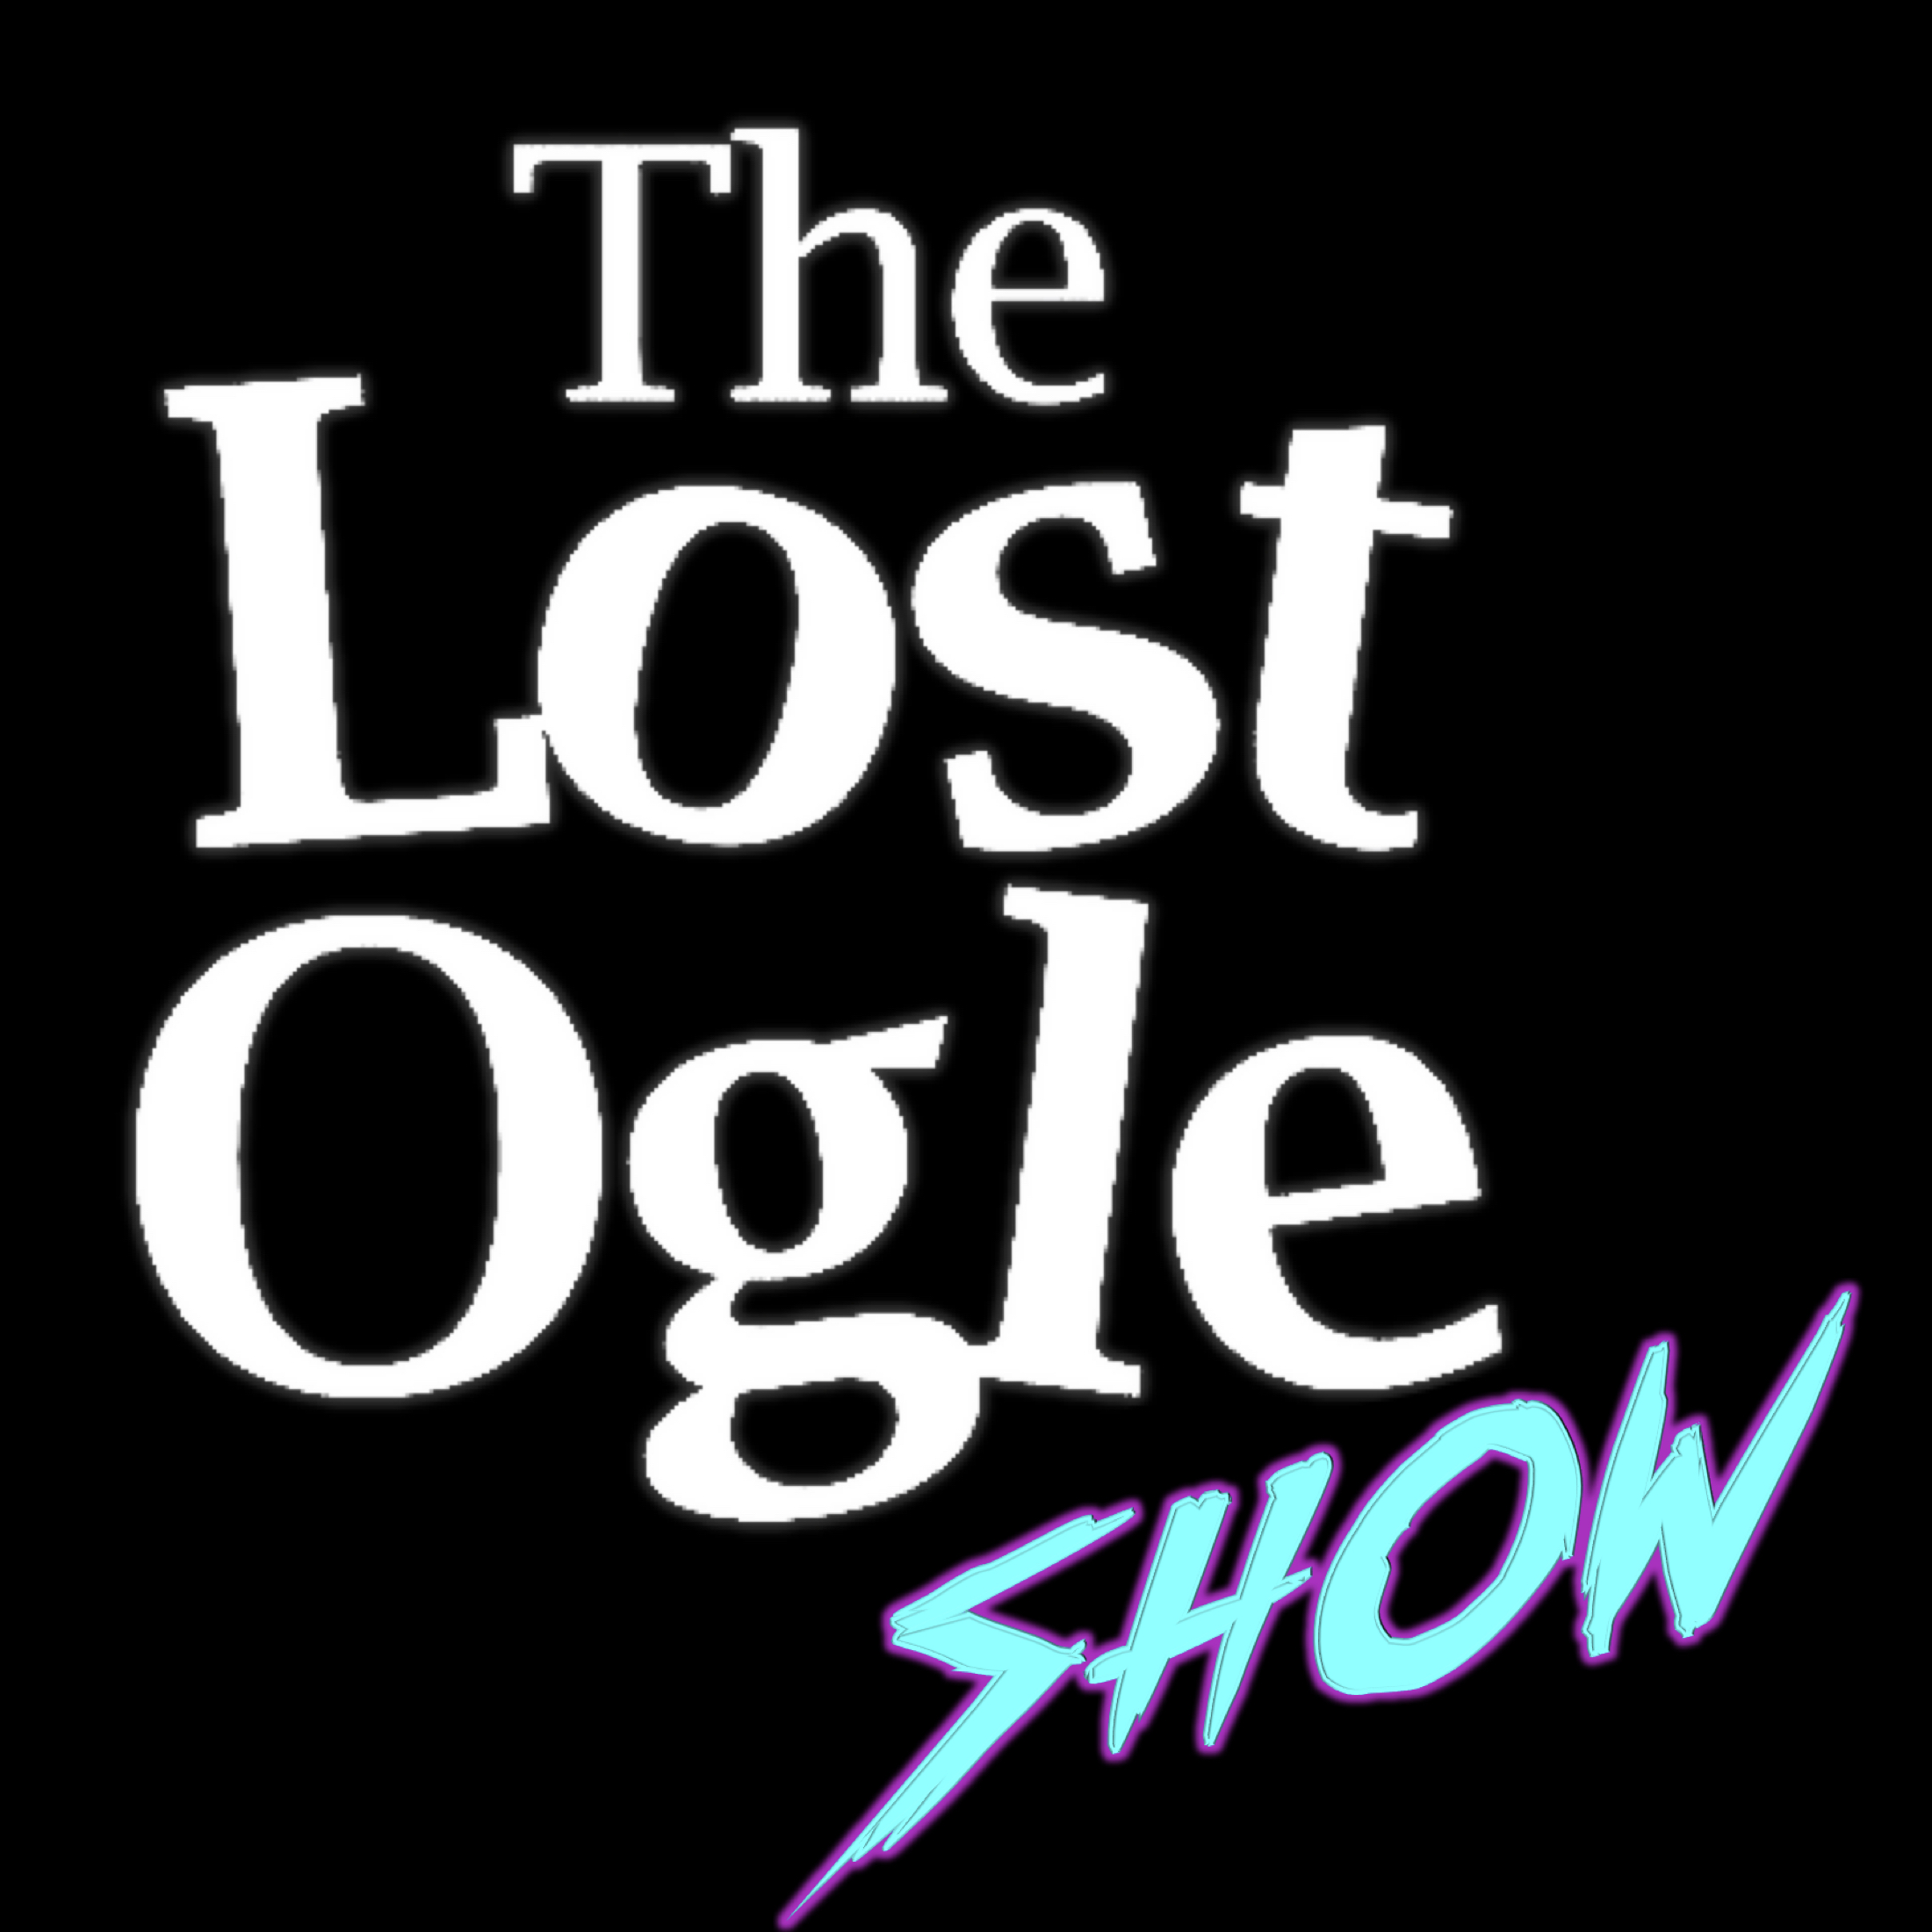 The Lost Ogle Show show art